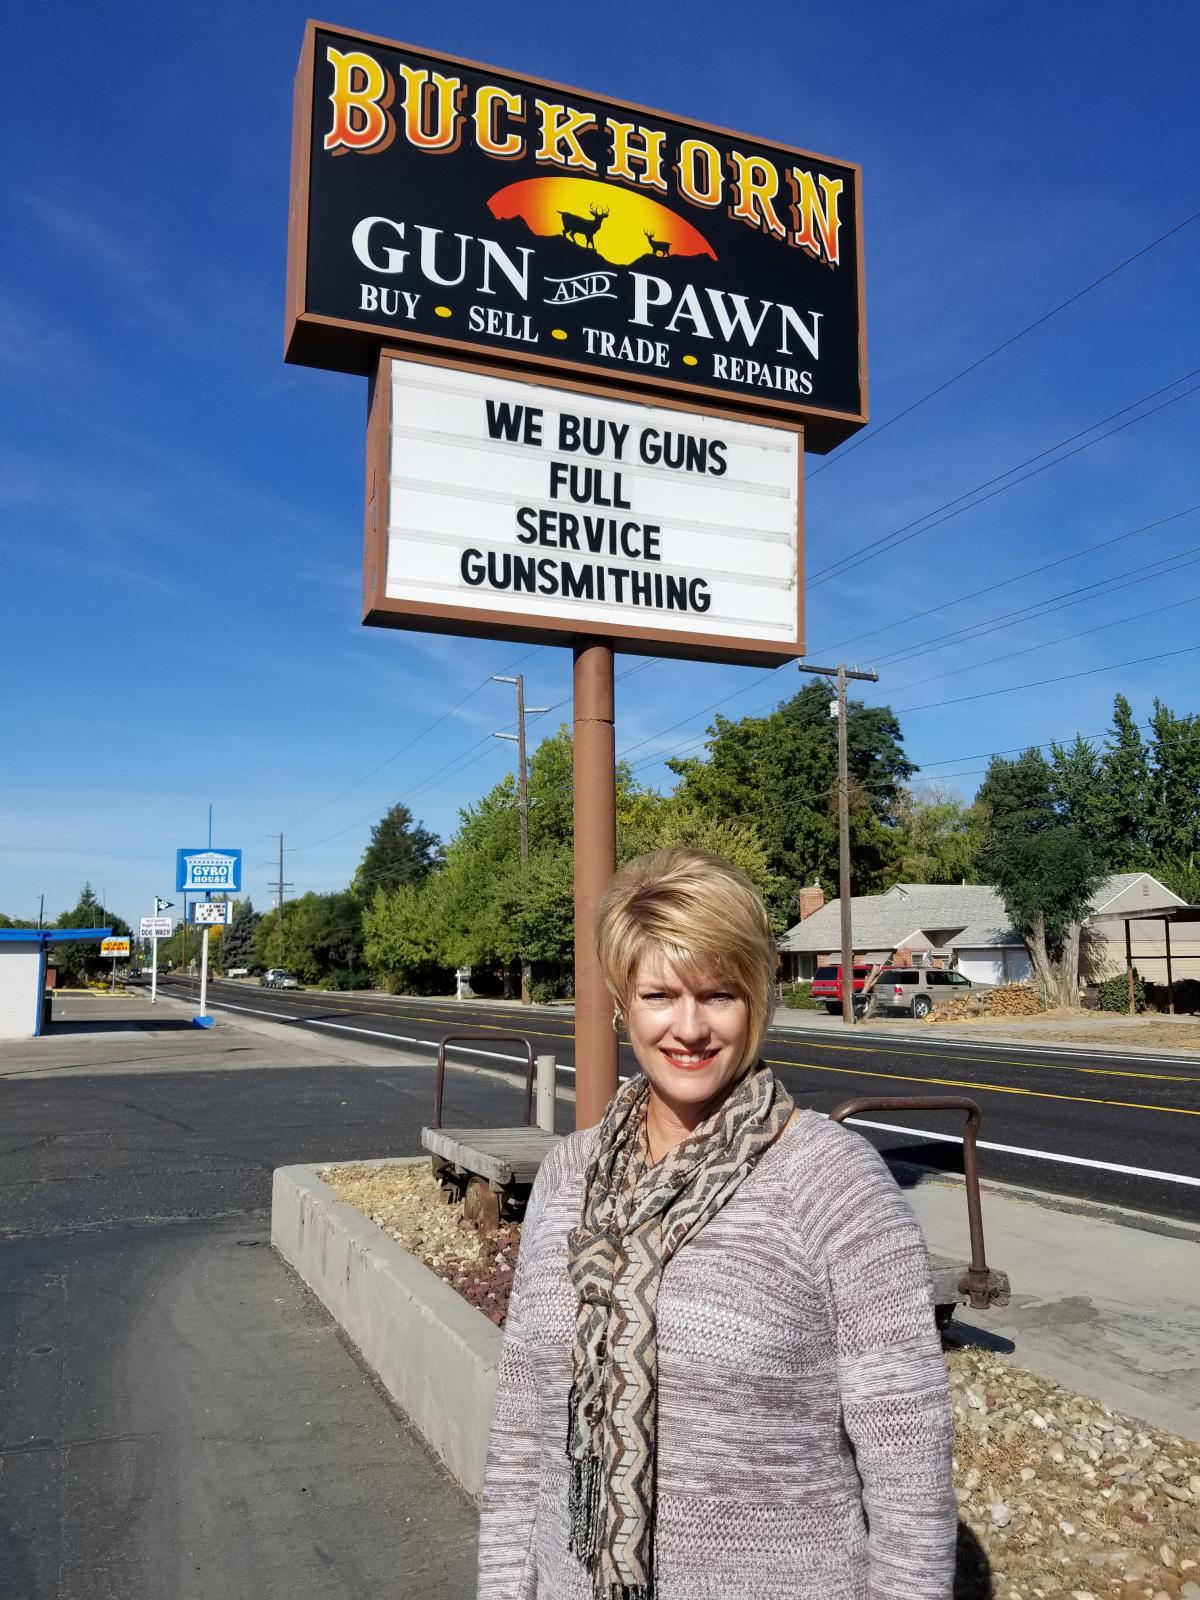 State Rep. Christy Perry, who co-owns a gun store in Boise, Idaho, is helping lead a campaign to persuade voters to approve Medicaid expansion in the state.